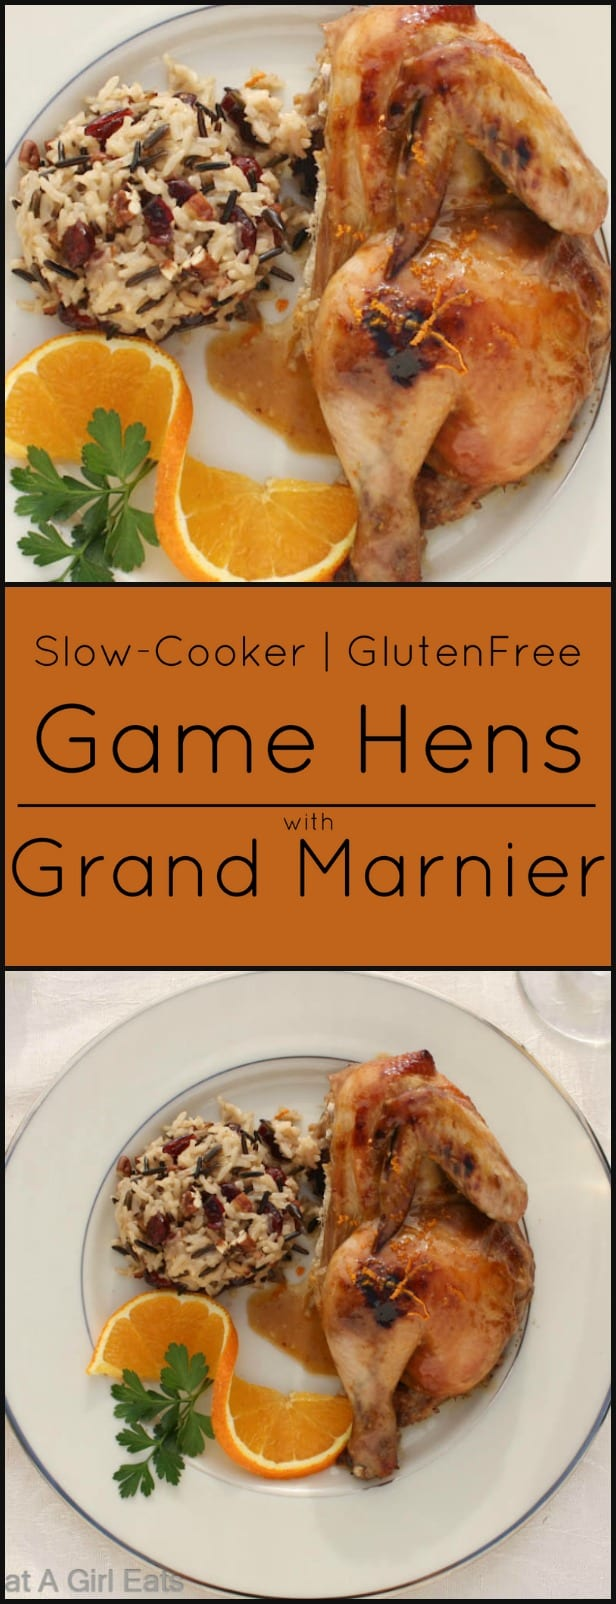 Slow-cooker Cornish Game Hens with Grand Marnier make an easy and elegant dinner. Gluten free.